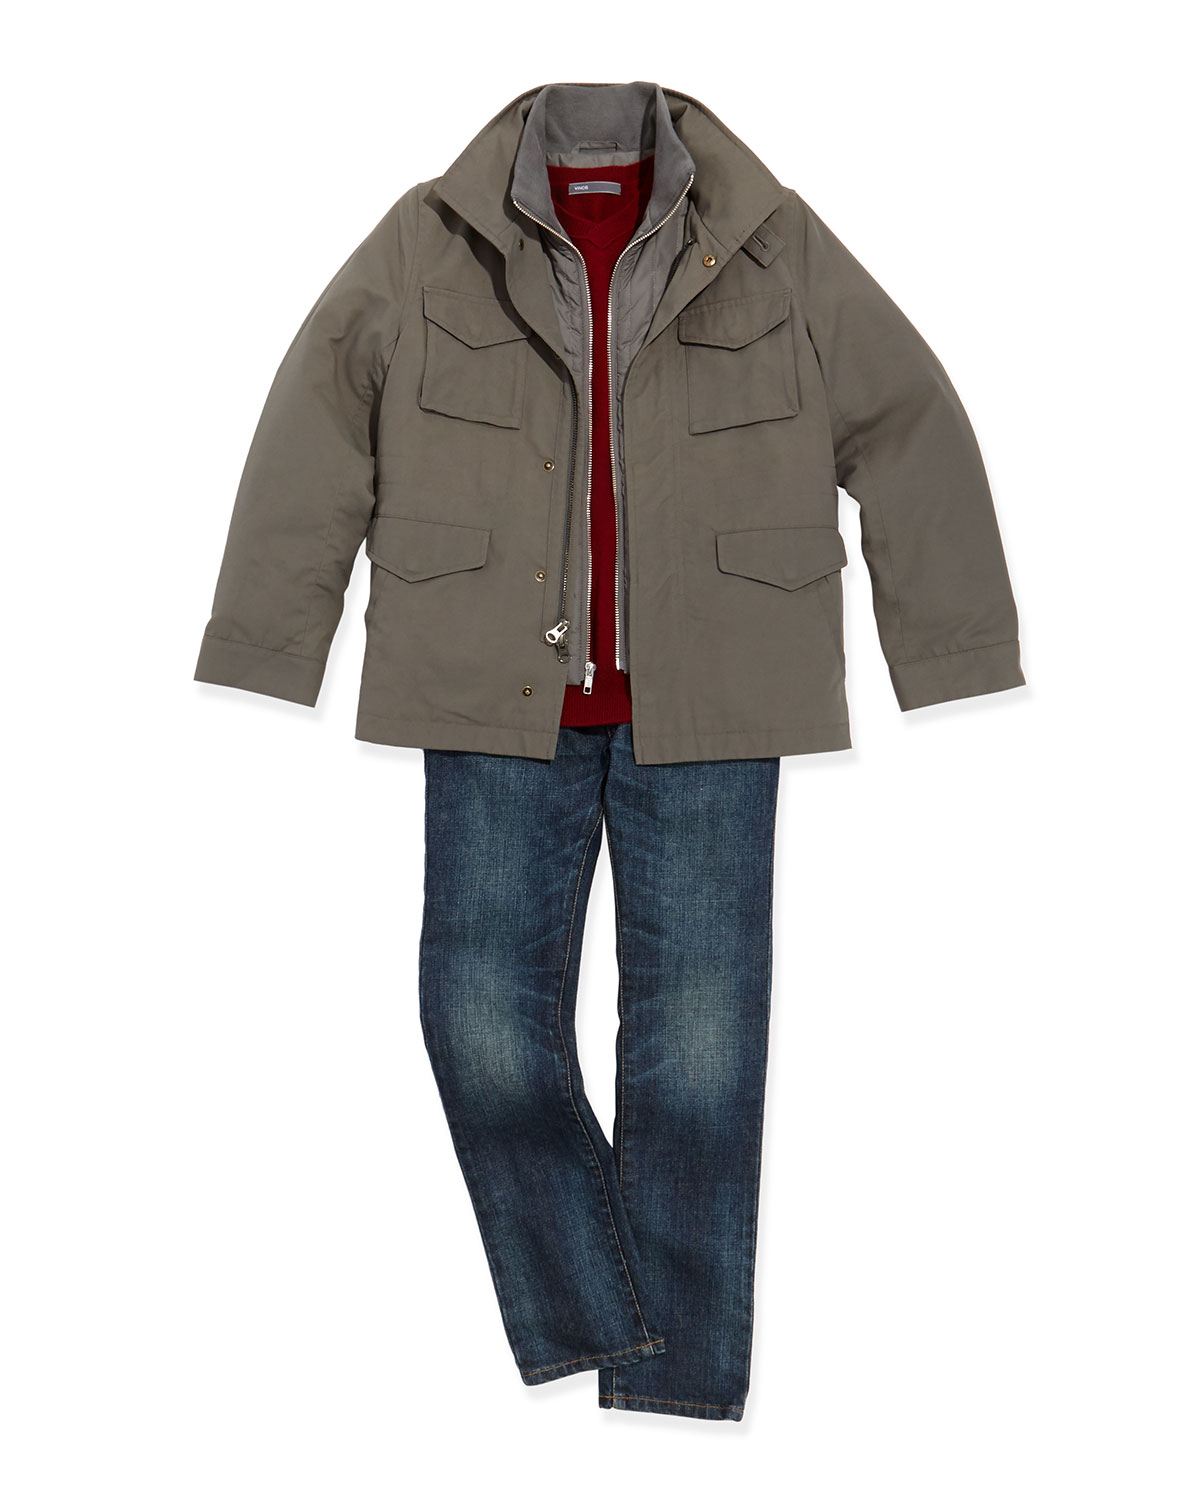 Boys' 3-in-1 Field Jacket, Raw-Edge V-Neck Cashmere Sweater & Boys' Slim-Fit Denim Jeans